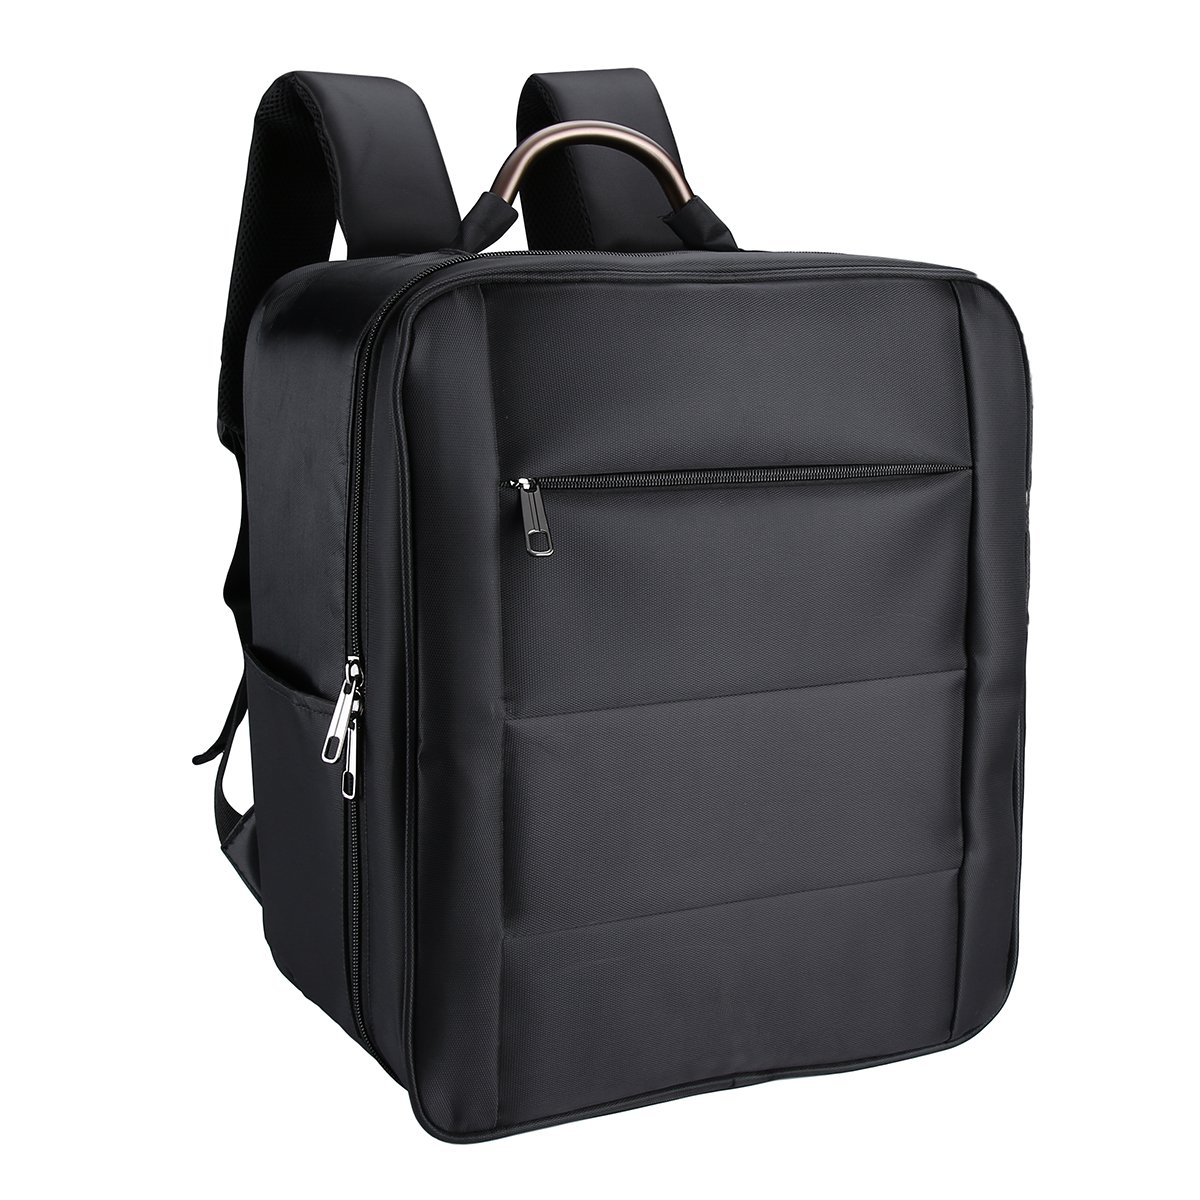 Powerextra Waterproof Carrying Bag Cases Traveling Backpack for DJI 3 Professional, Advanced, Standard, 4K Quadcopter Drone and Accessories - Upgraded by Powerextra